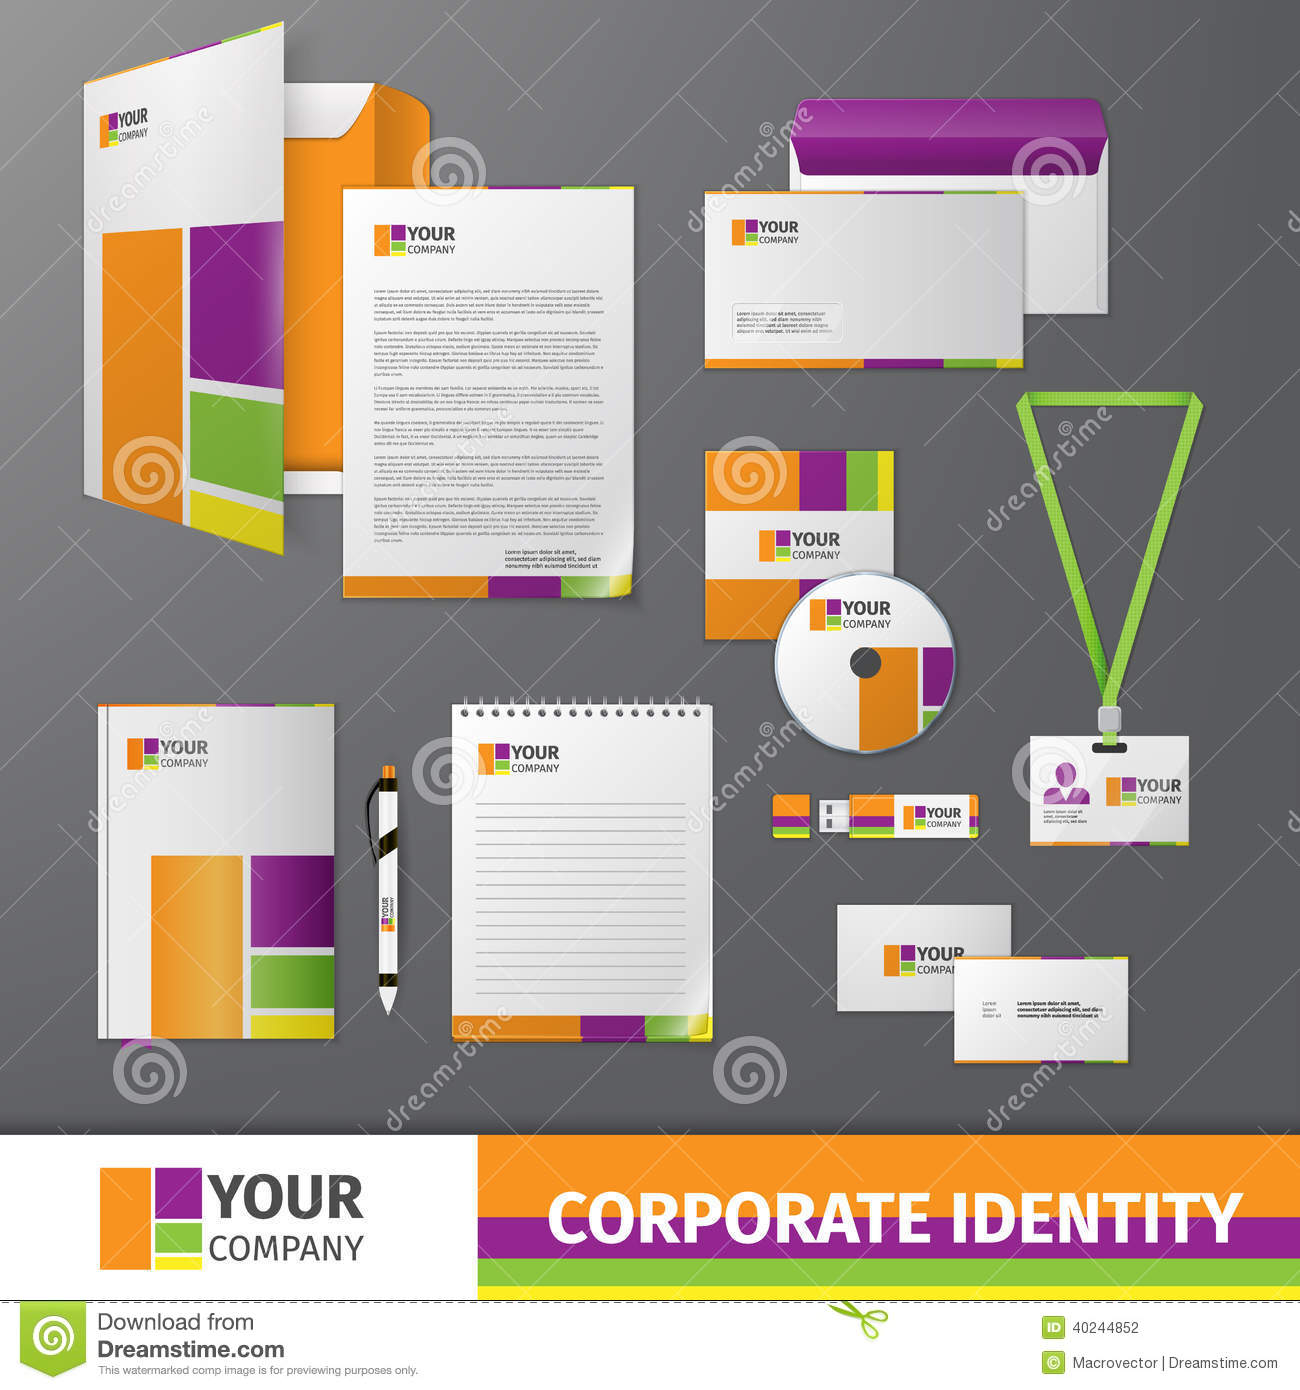 How to Build Your Startup's Brand Identity From Scratch